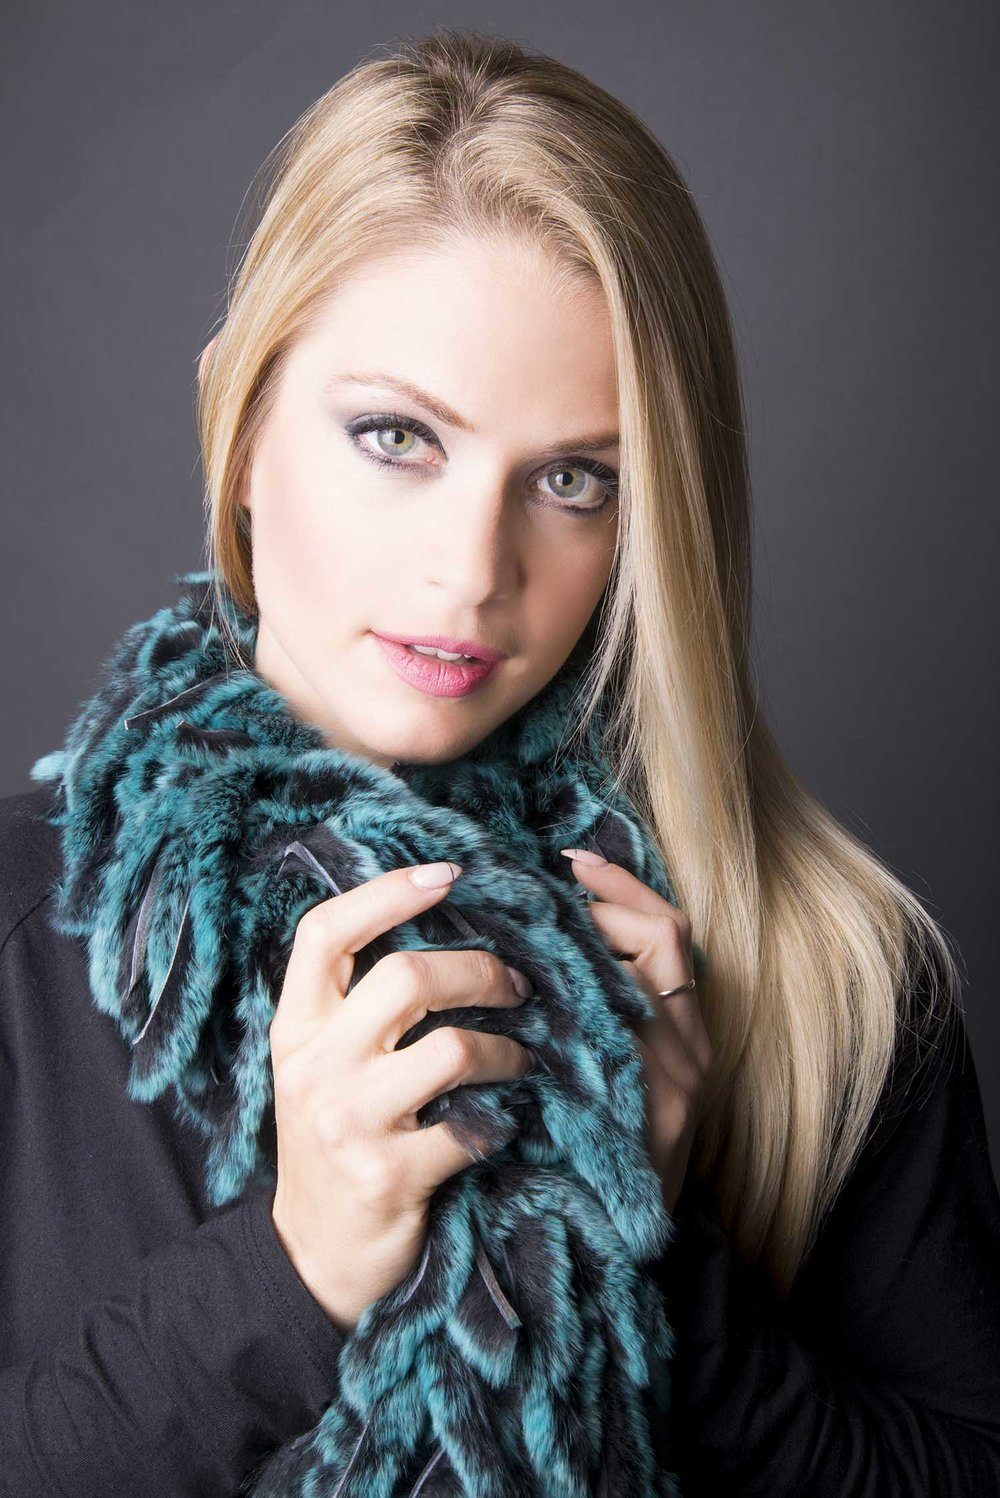 pat-flesher-furs-accessories-scarf-turquoise-women.jpg